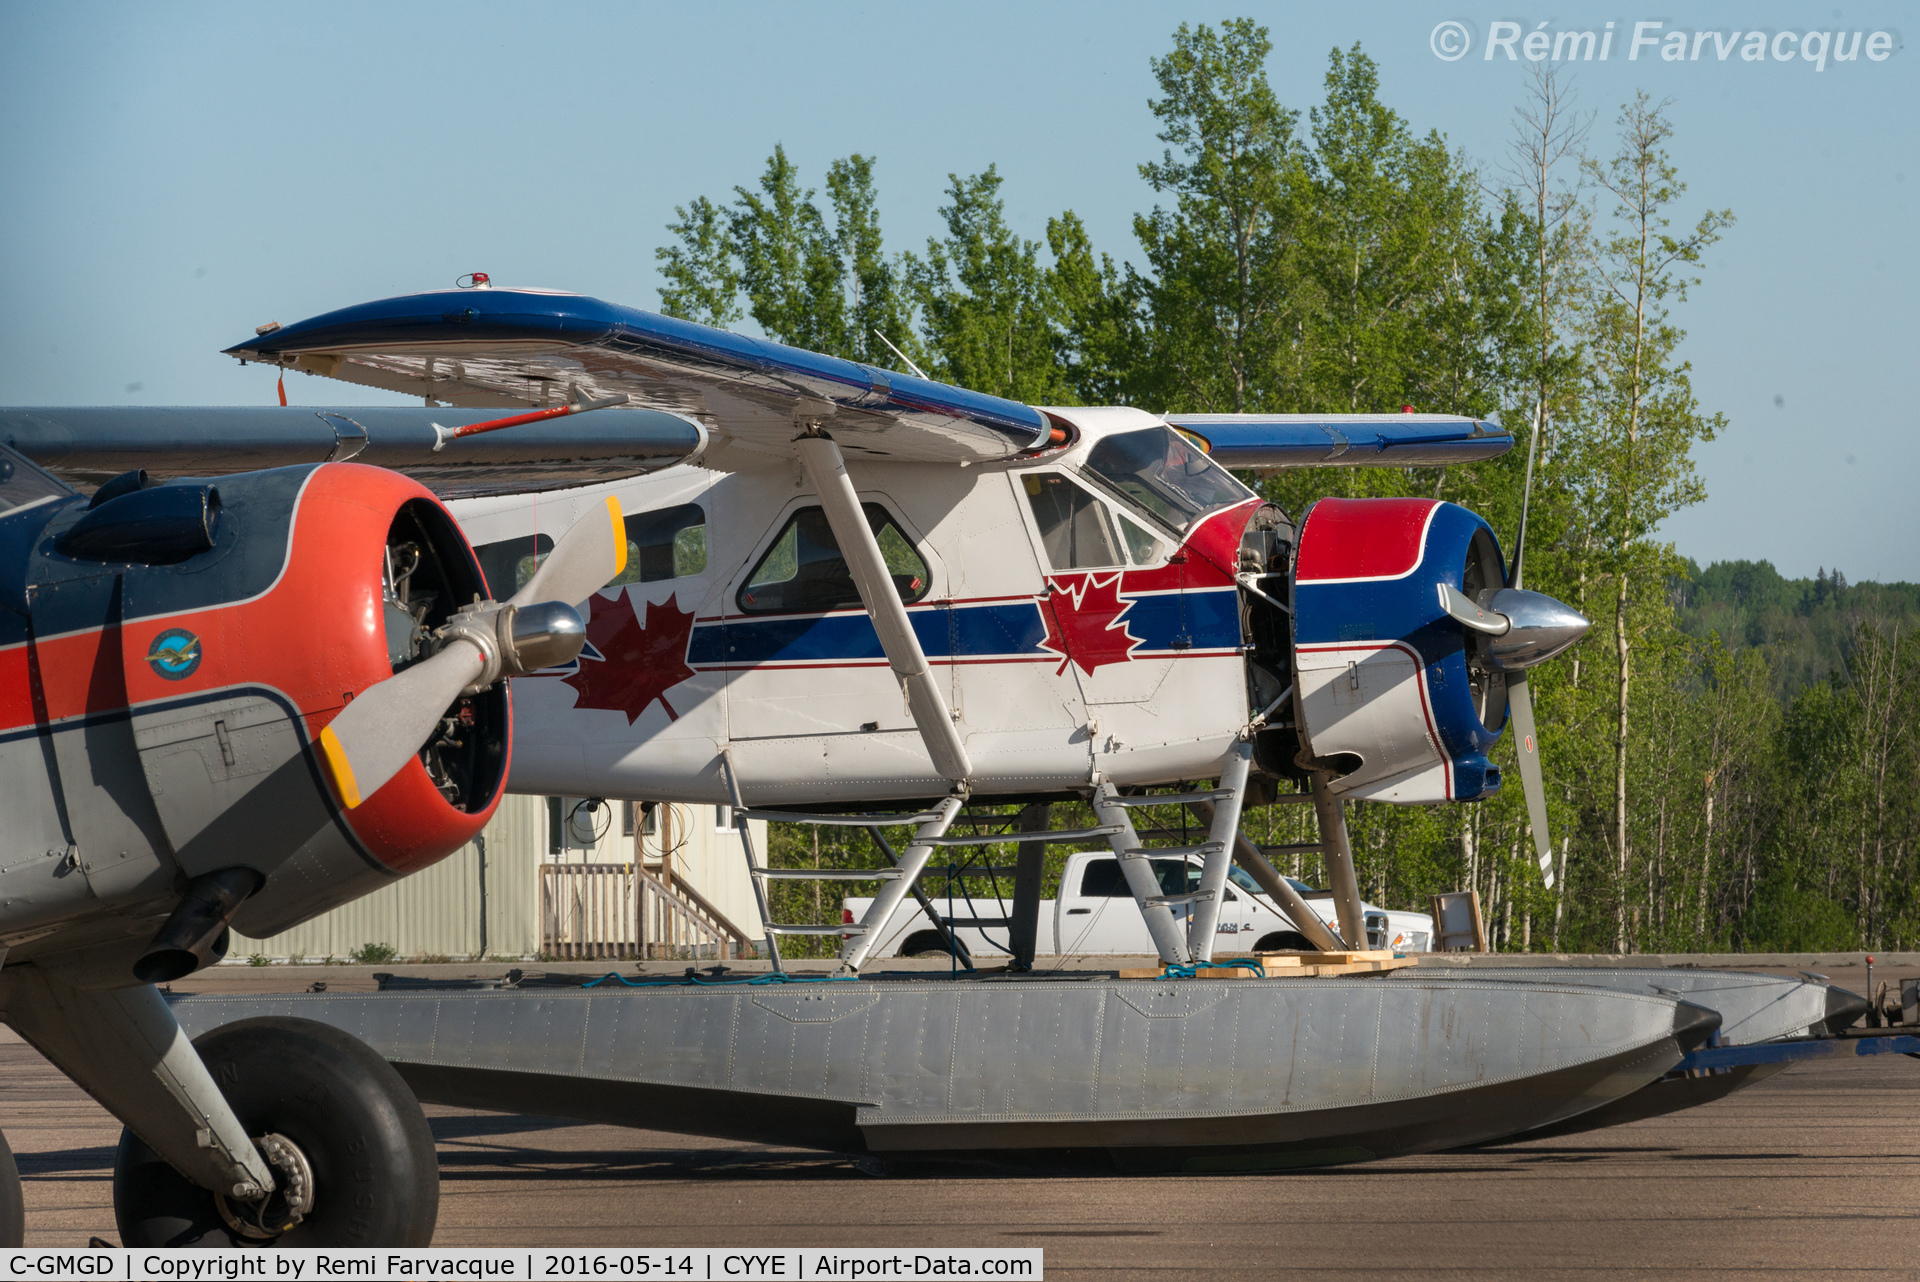 C-GMGD, 1954 De Havilland Canada DHC-2 Beaver Mk.1 C/N 519, Parked in front of private hanger, NE part of airport.